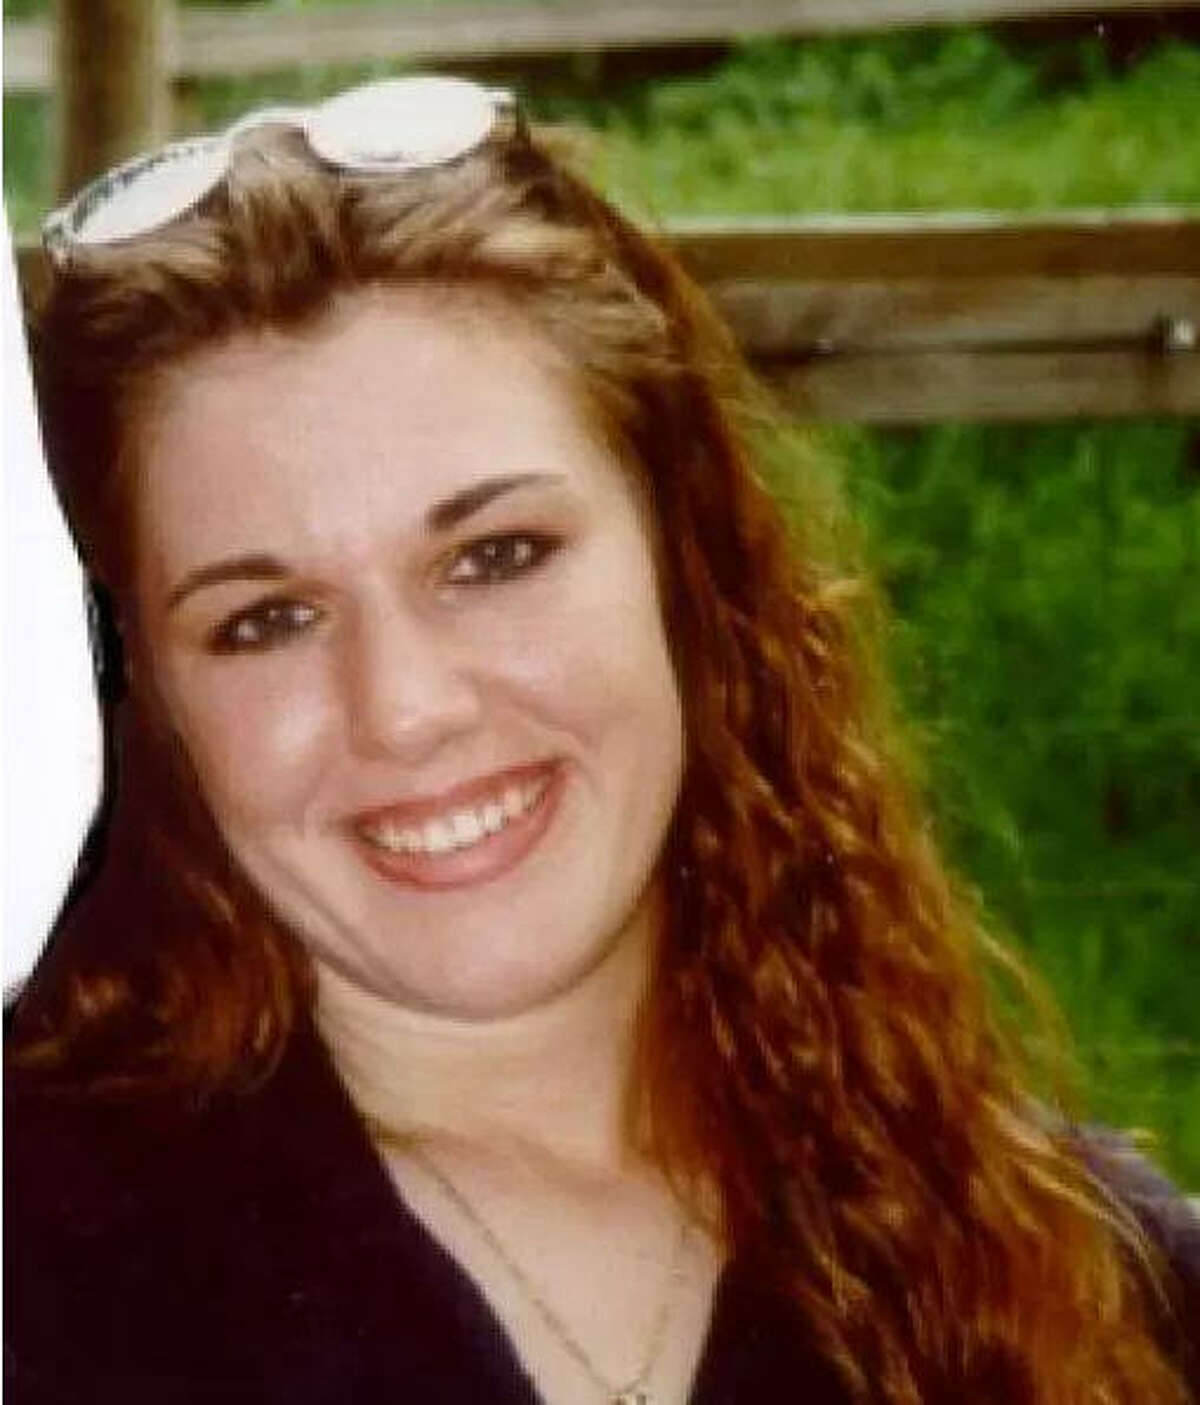 Kelli Ann Cox - A University of North Texas honor student went missing after a tour of the Denton jail with her criminology class in July 1997.